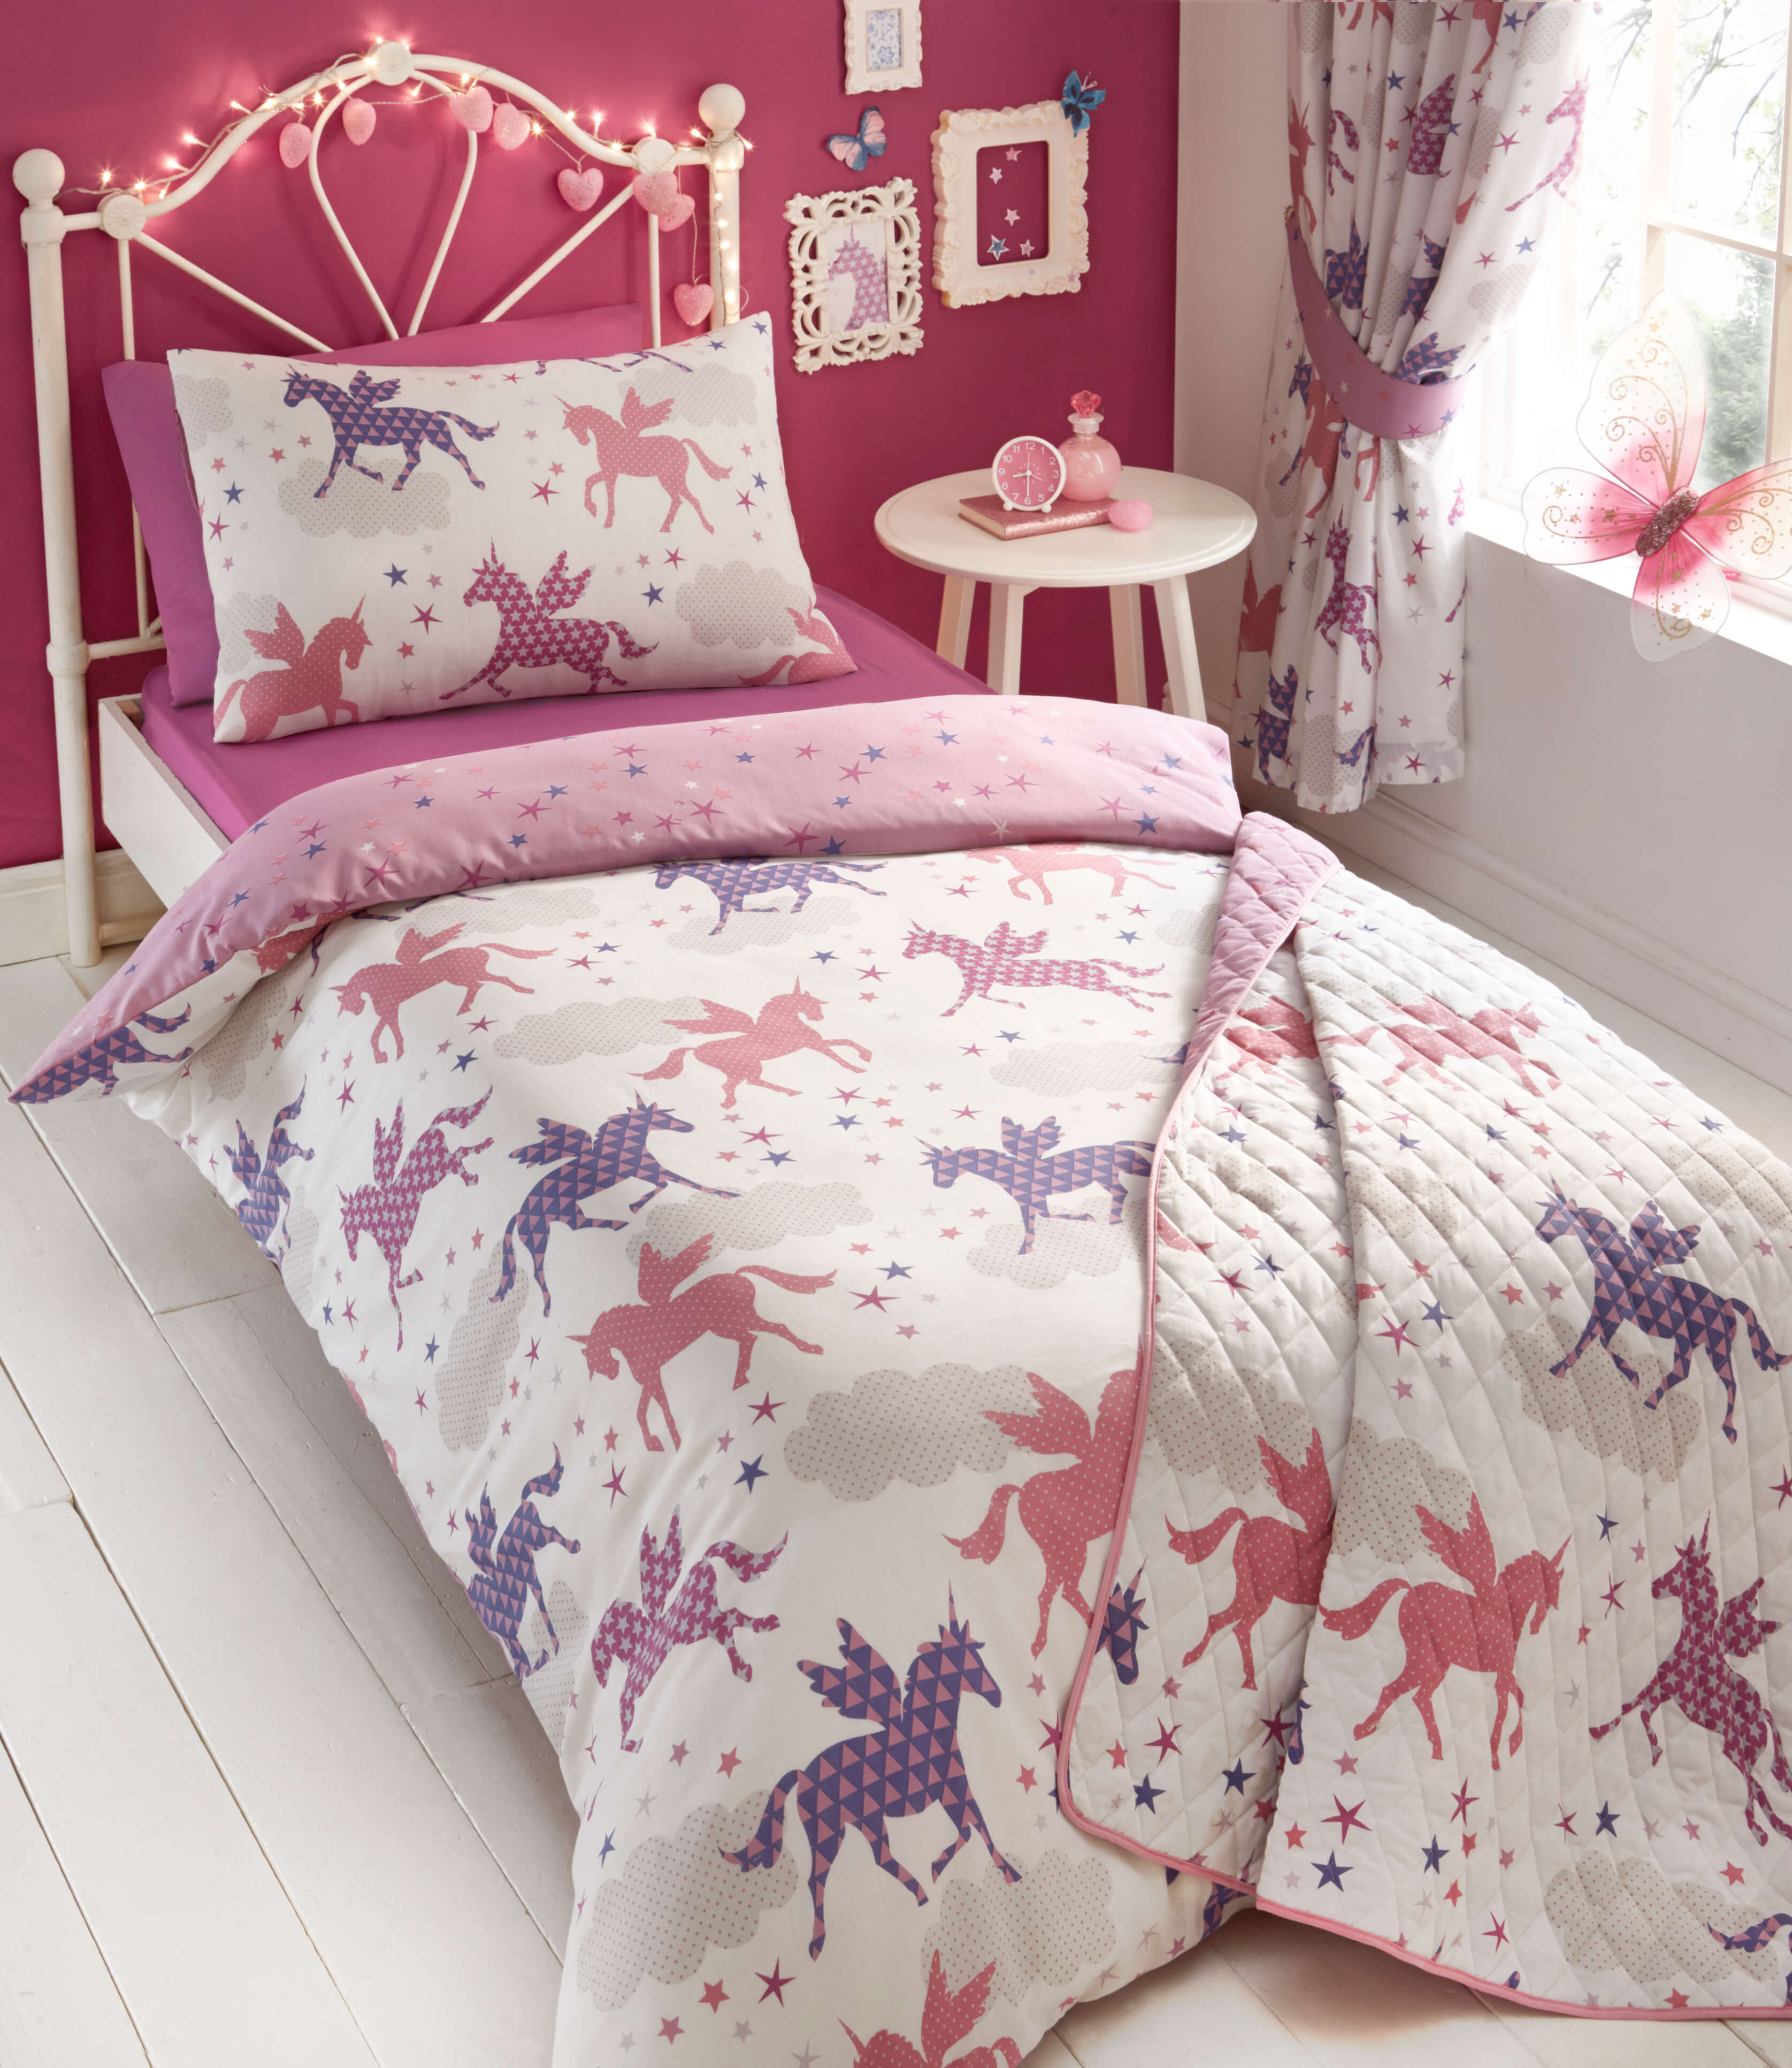 The Bedlinen Company